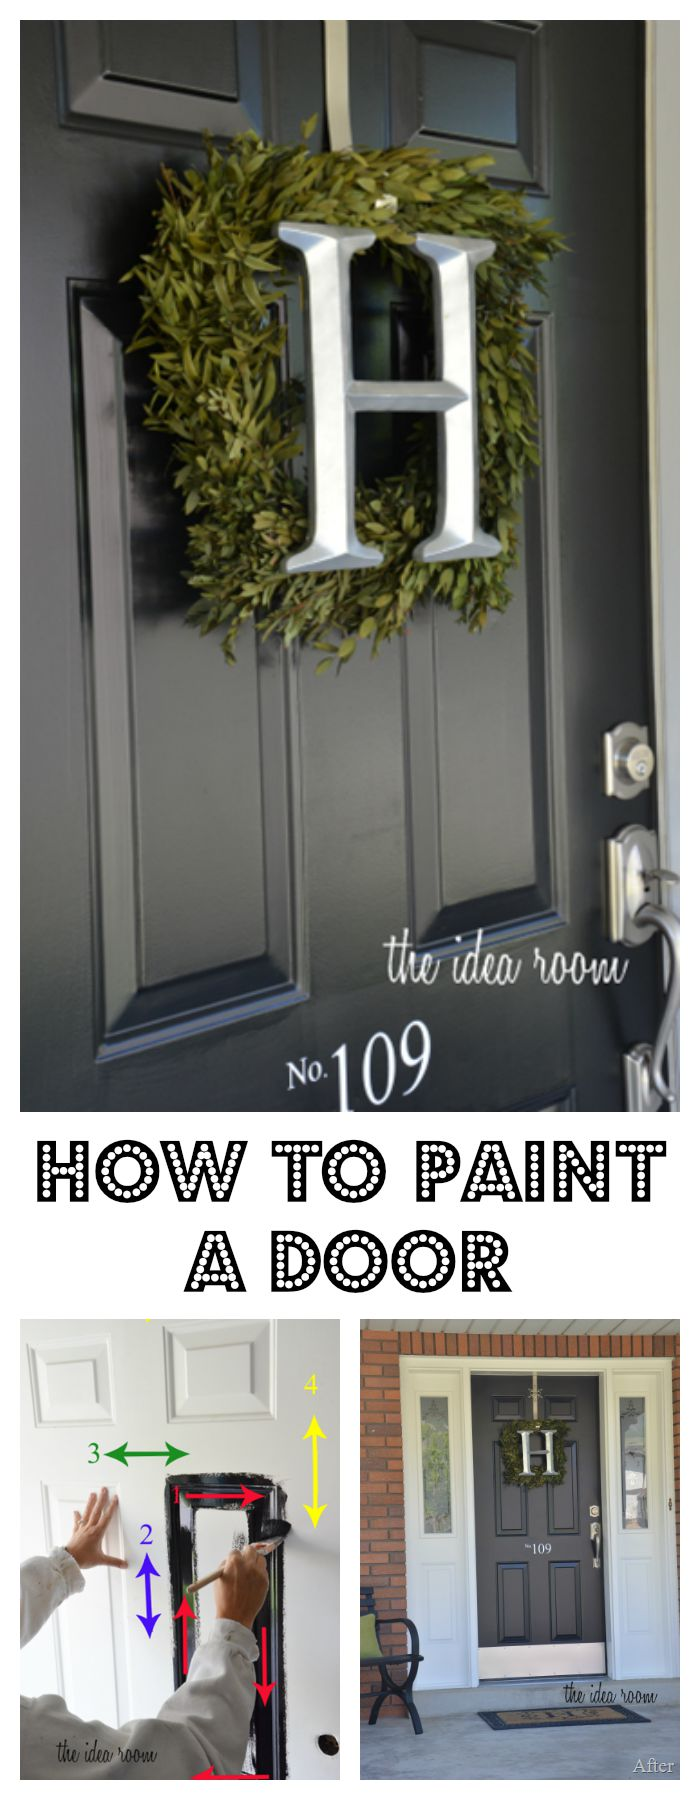 How-to-paint-a-Door-DIY-Home-Ideas